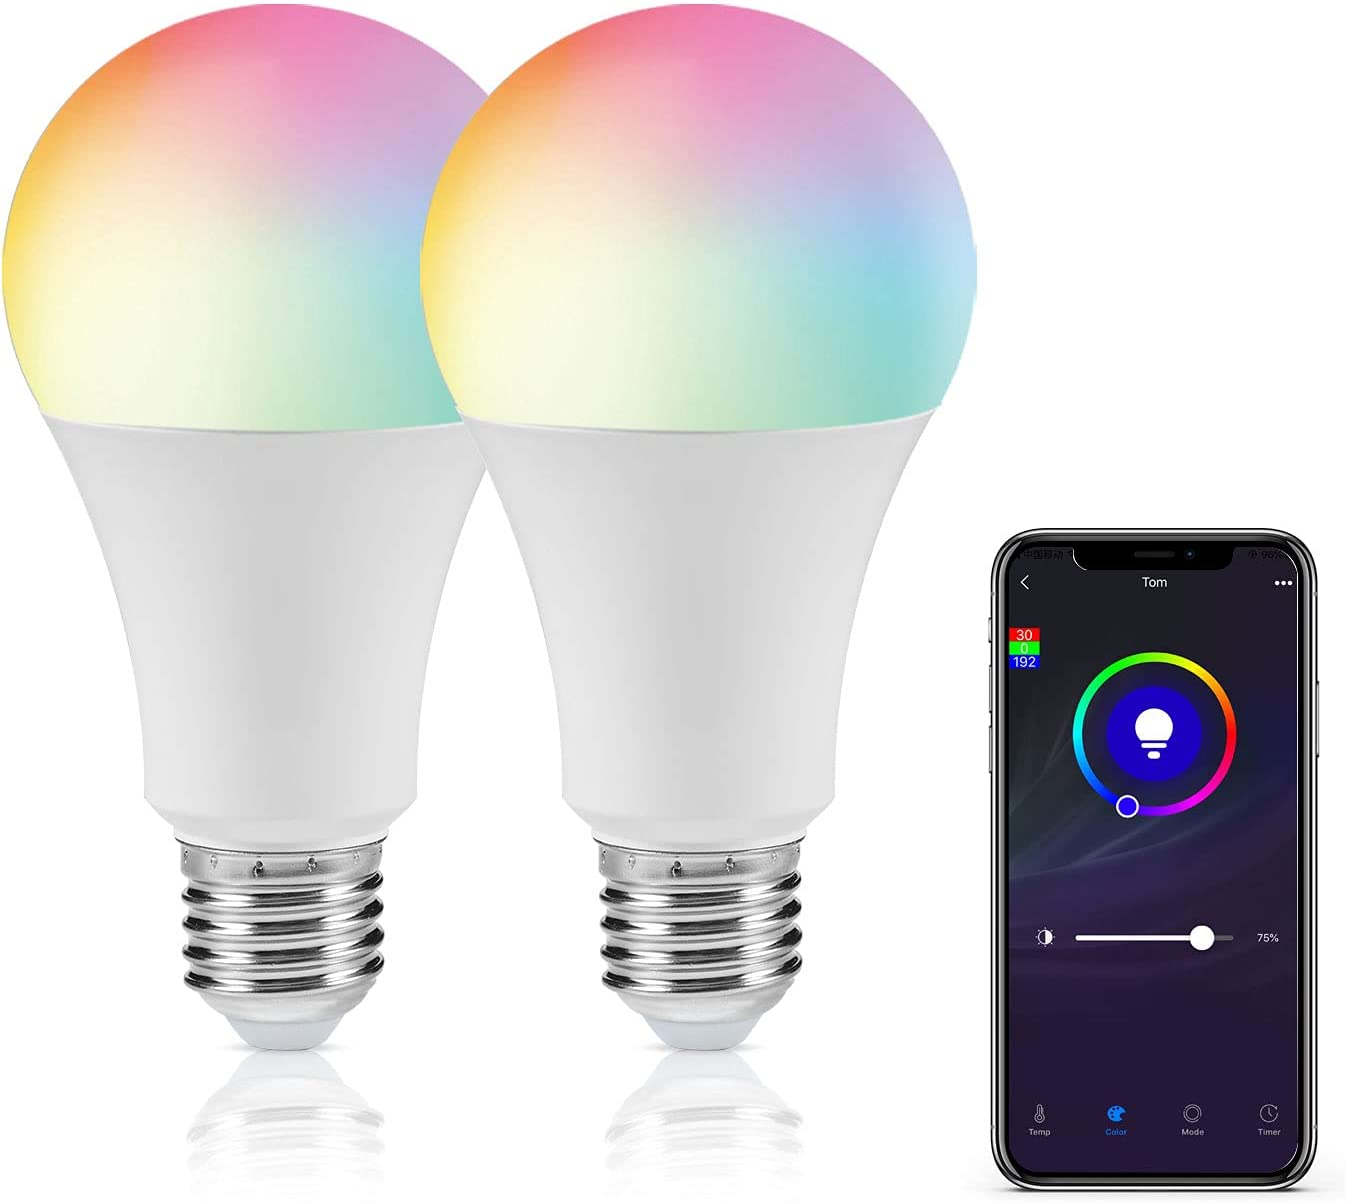 Smart Light Bulb, DoHome WiFi LED Light Bulb Color Changing LED Smart Bulb Compatible with Alexa, Apple Homekit and Google Assistant A19 E26 No Hub Required Remote Control Multicolor Light Bulb 2pcs